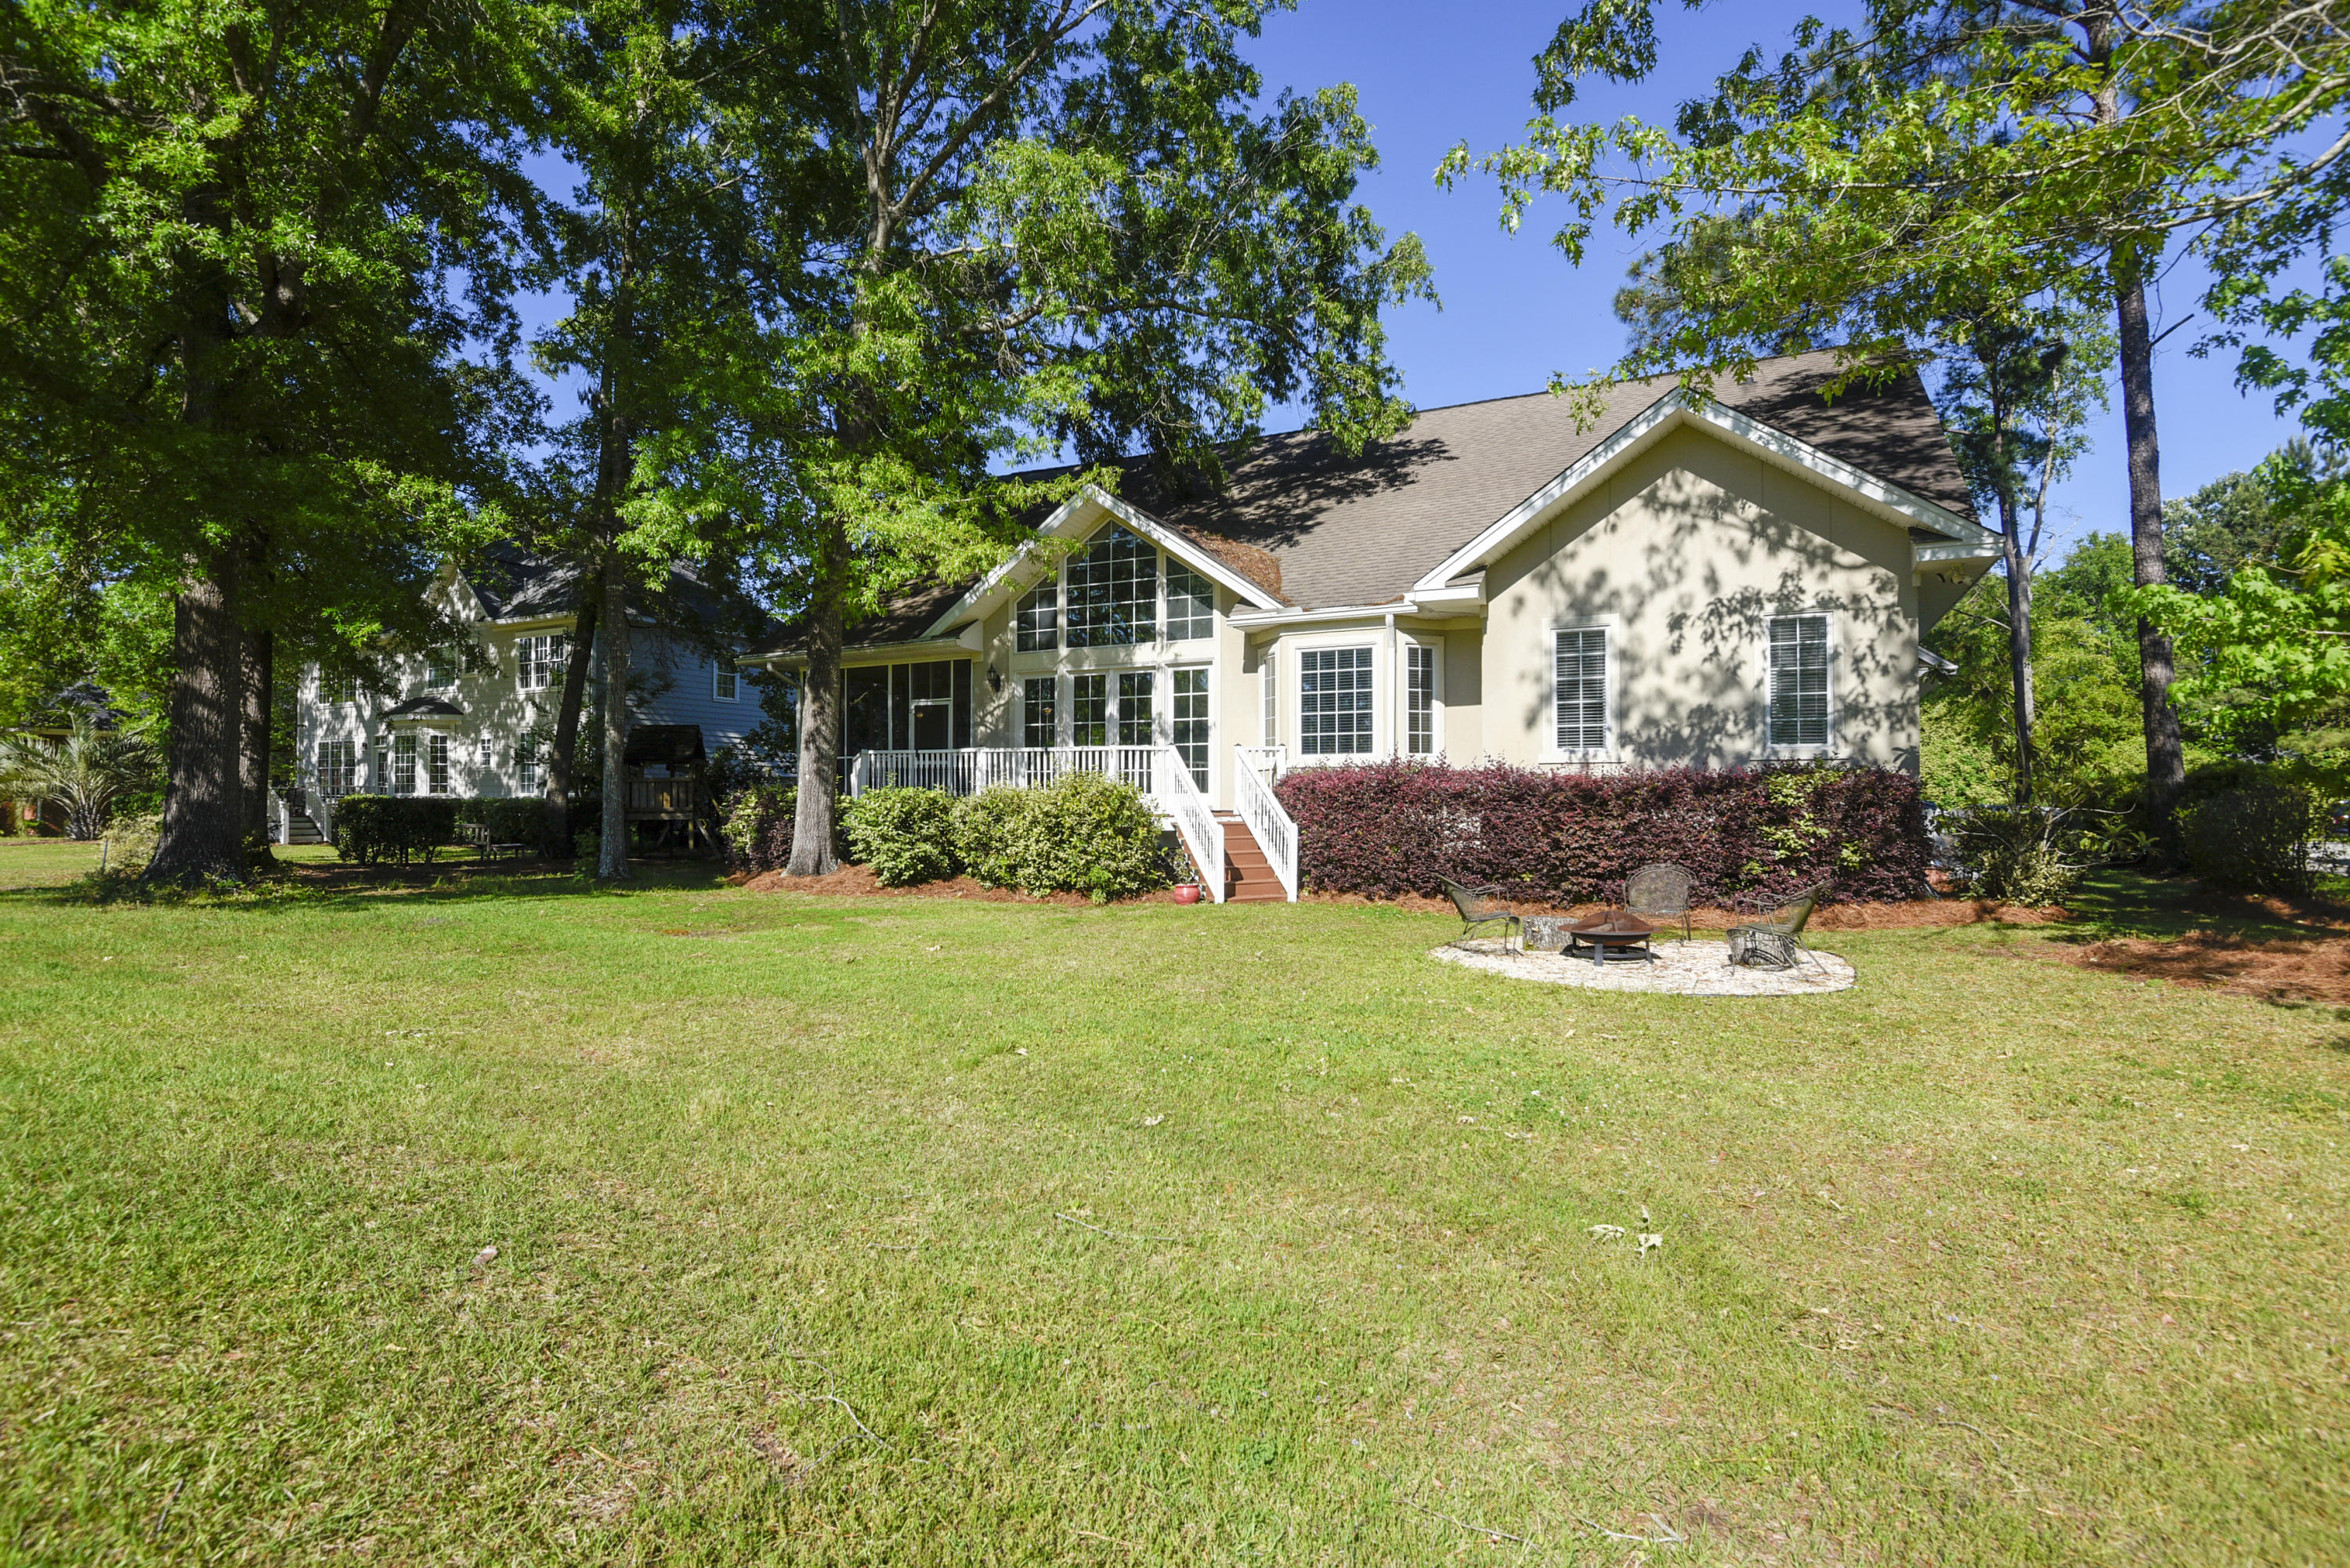 Coosaw Creek Country Club Homes For Sale - 8855 Fairway Woods, North Charleston, SC - 14